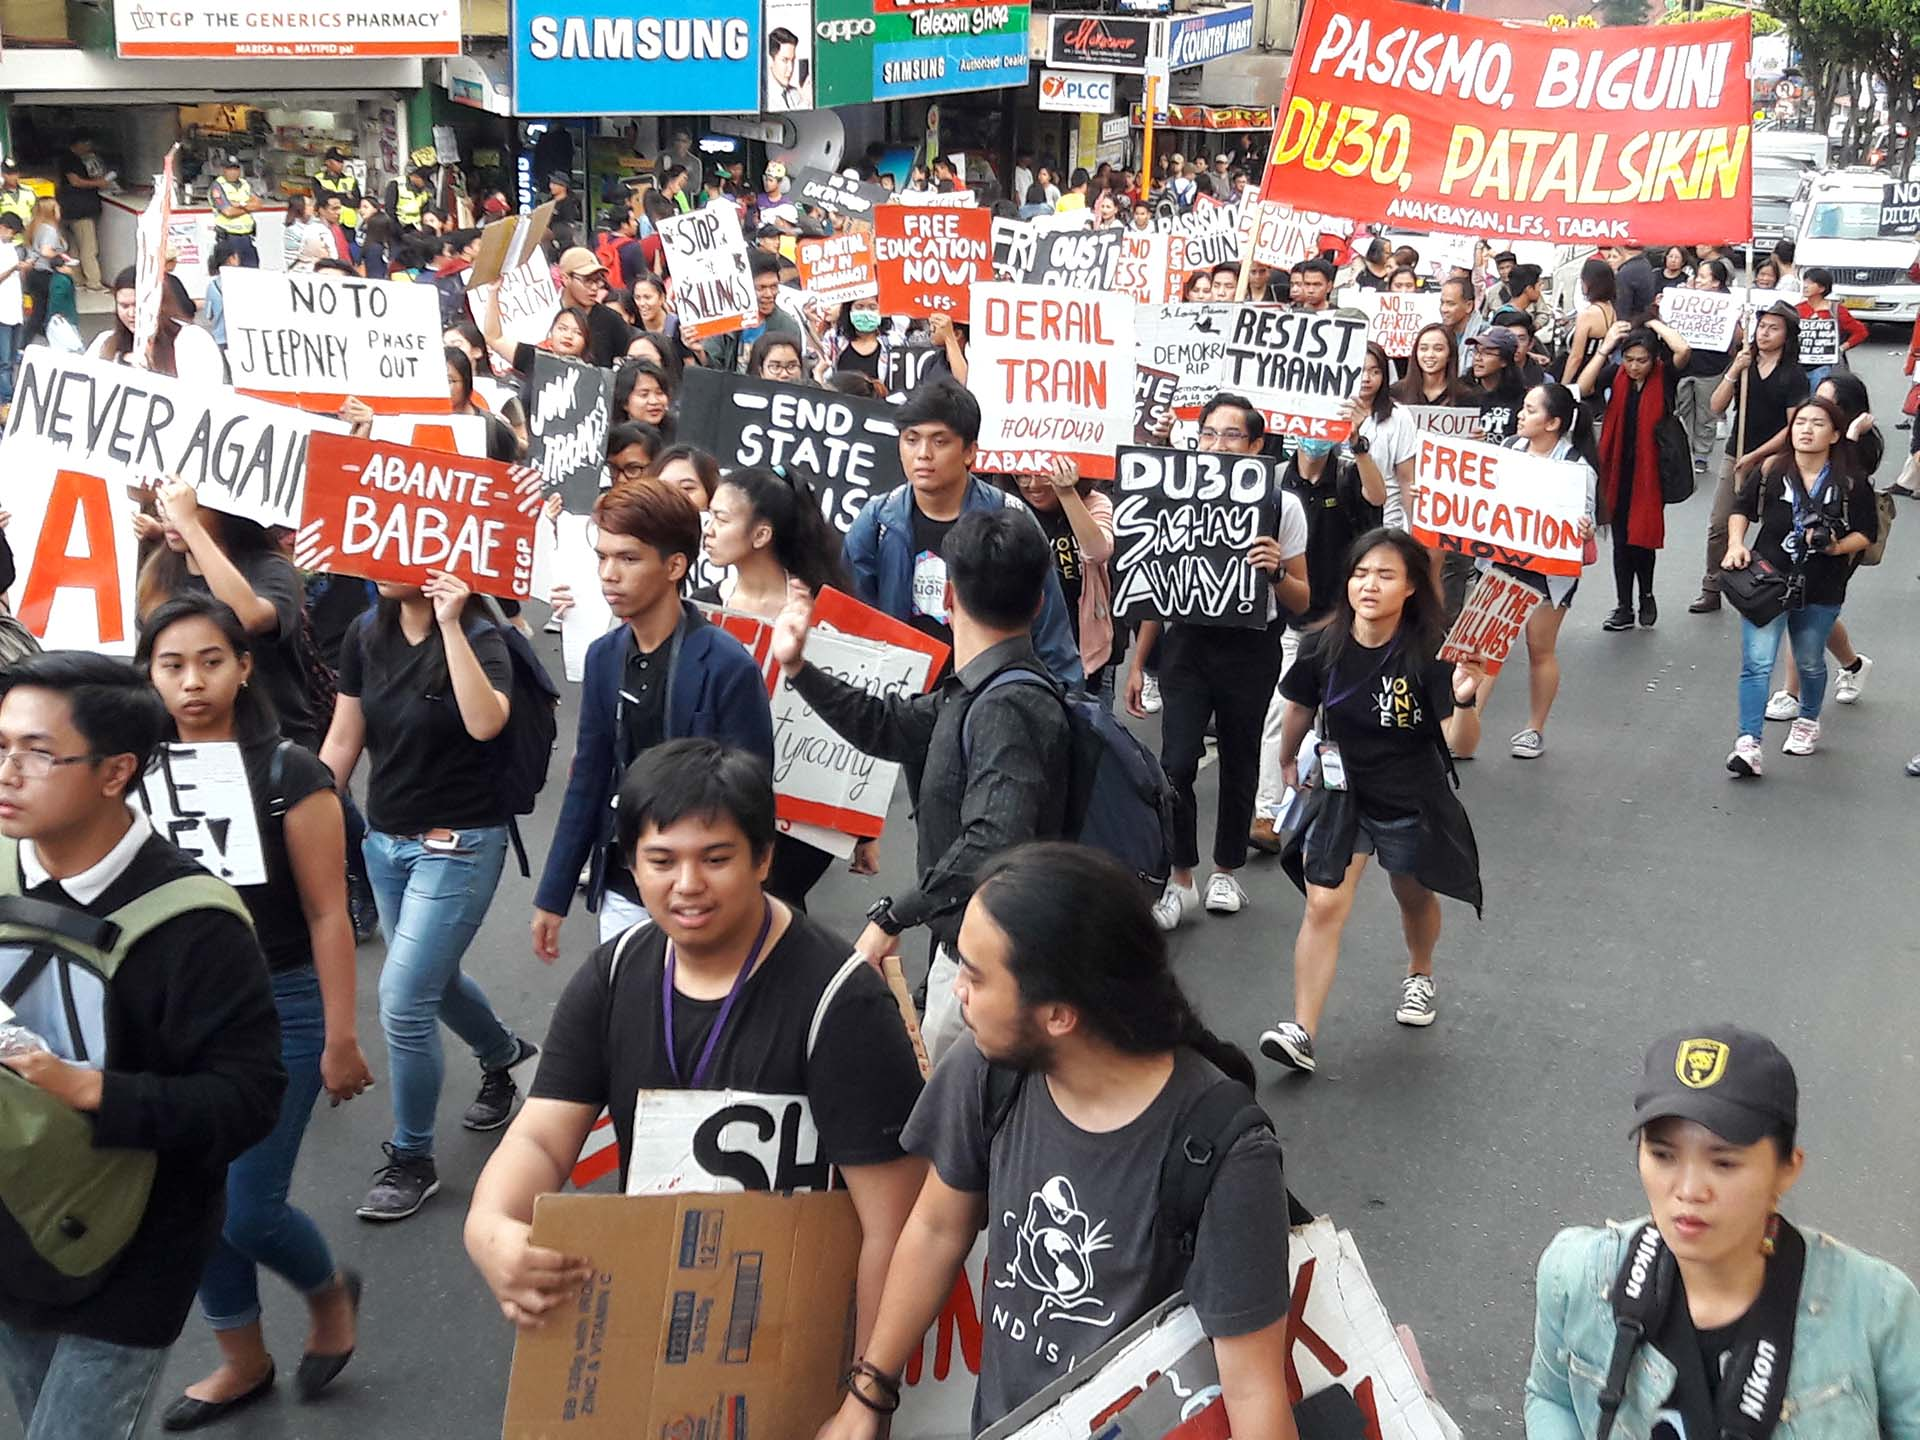 #WALKOUTPH. At least 500 students and artists join the protest in Baguio City on Friday, February 23. Photo by Mau Victa/Rappler